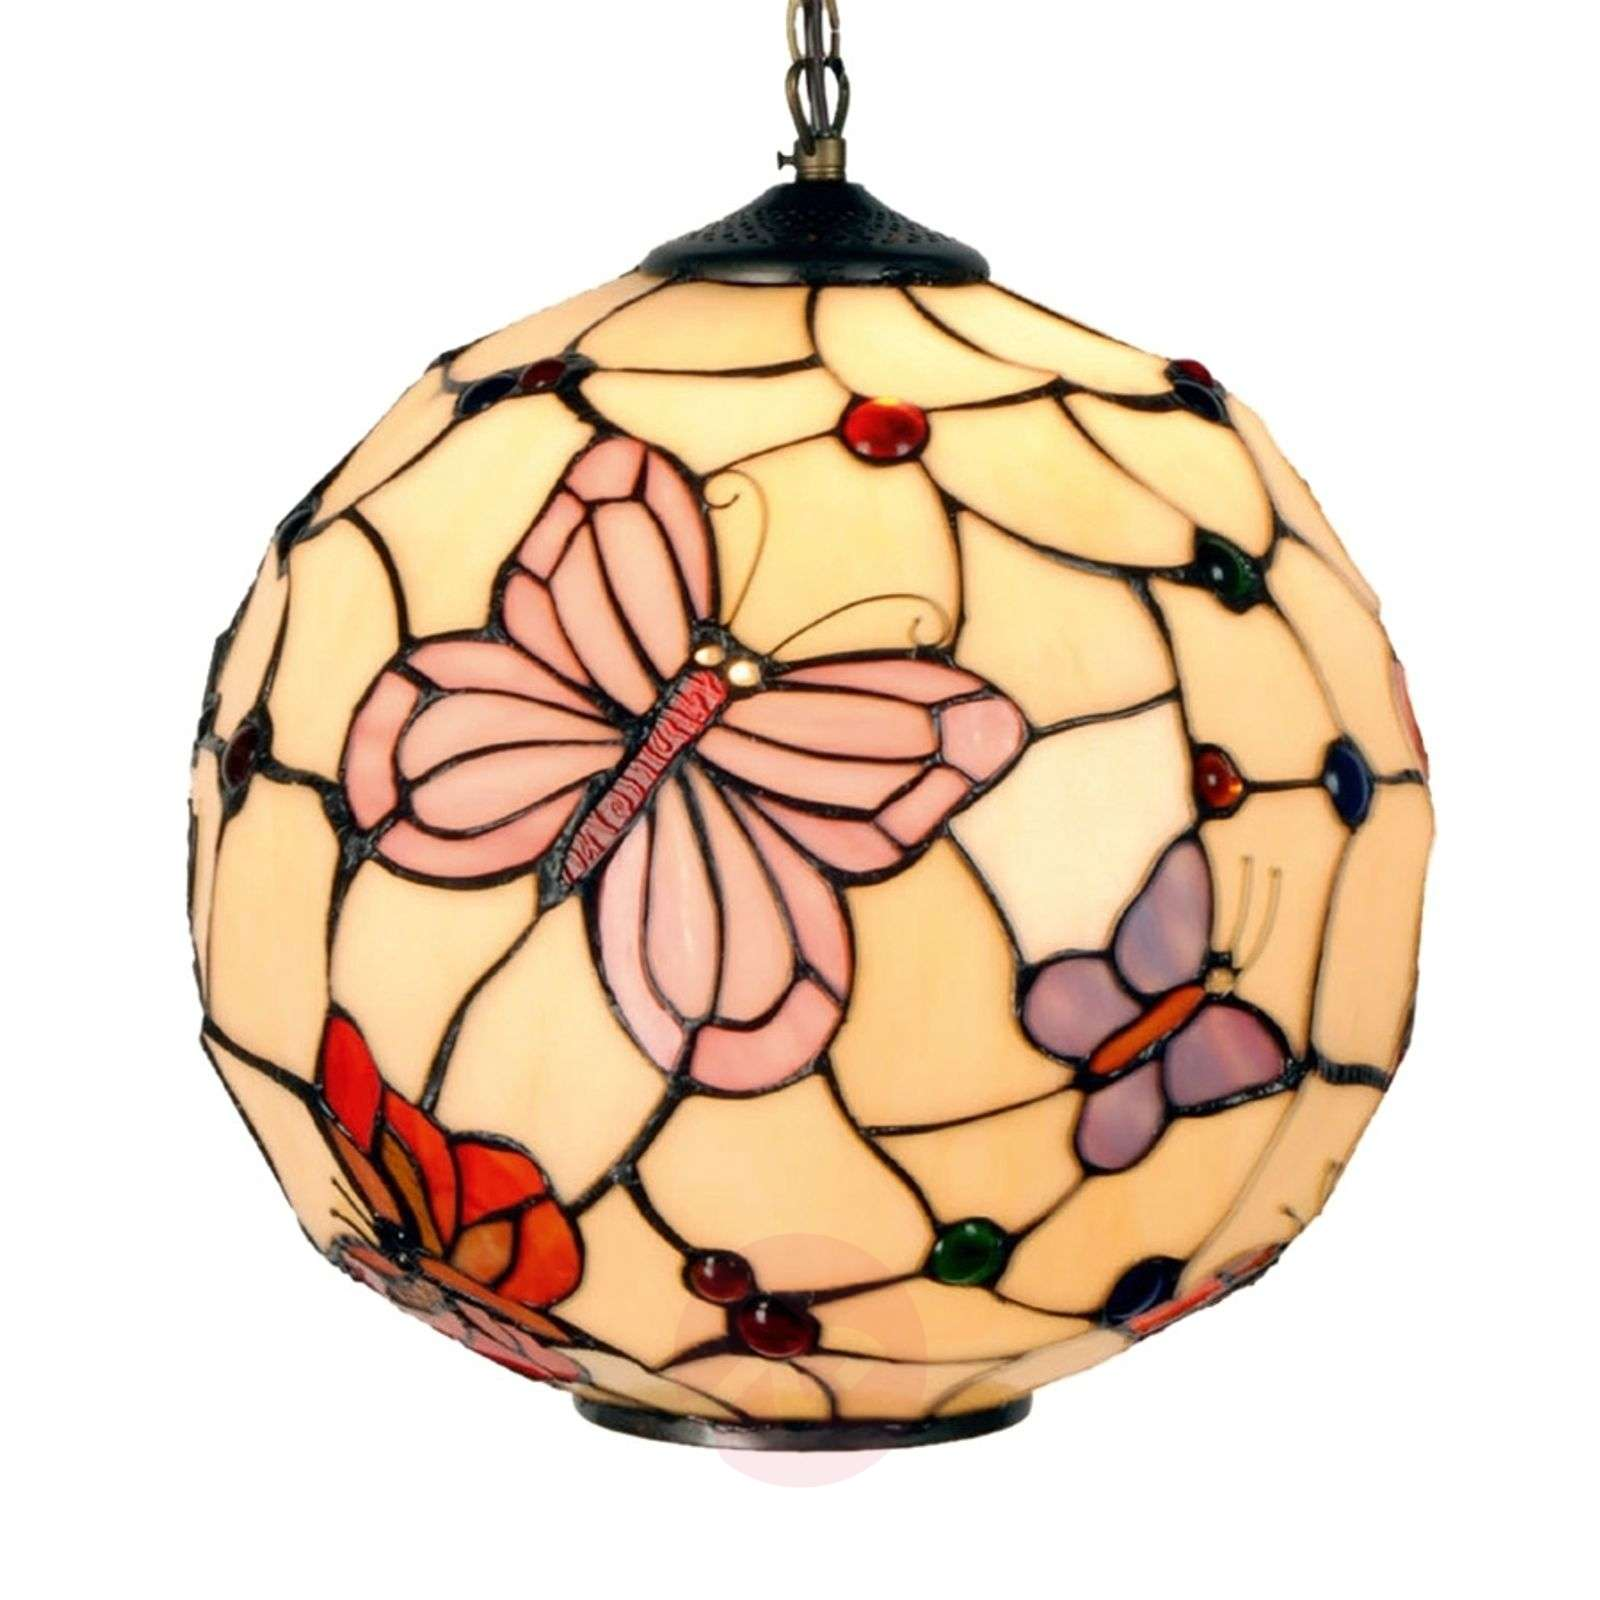 aca28a9dc3d10 Hanglamp Rosy Butterfly in Tiffany-stijl-6064008-01 ...